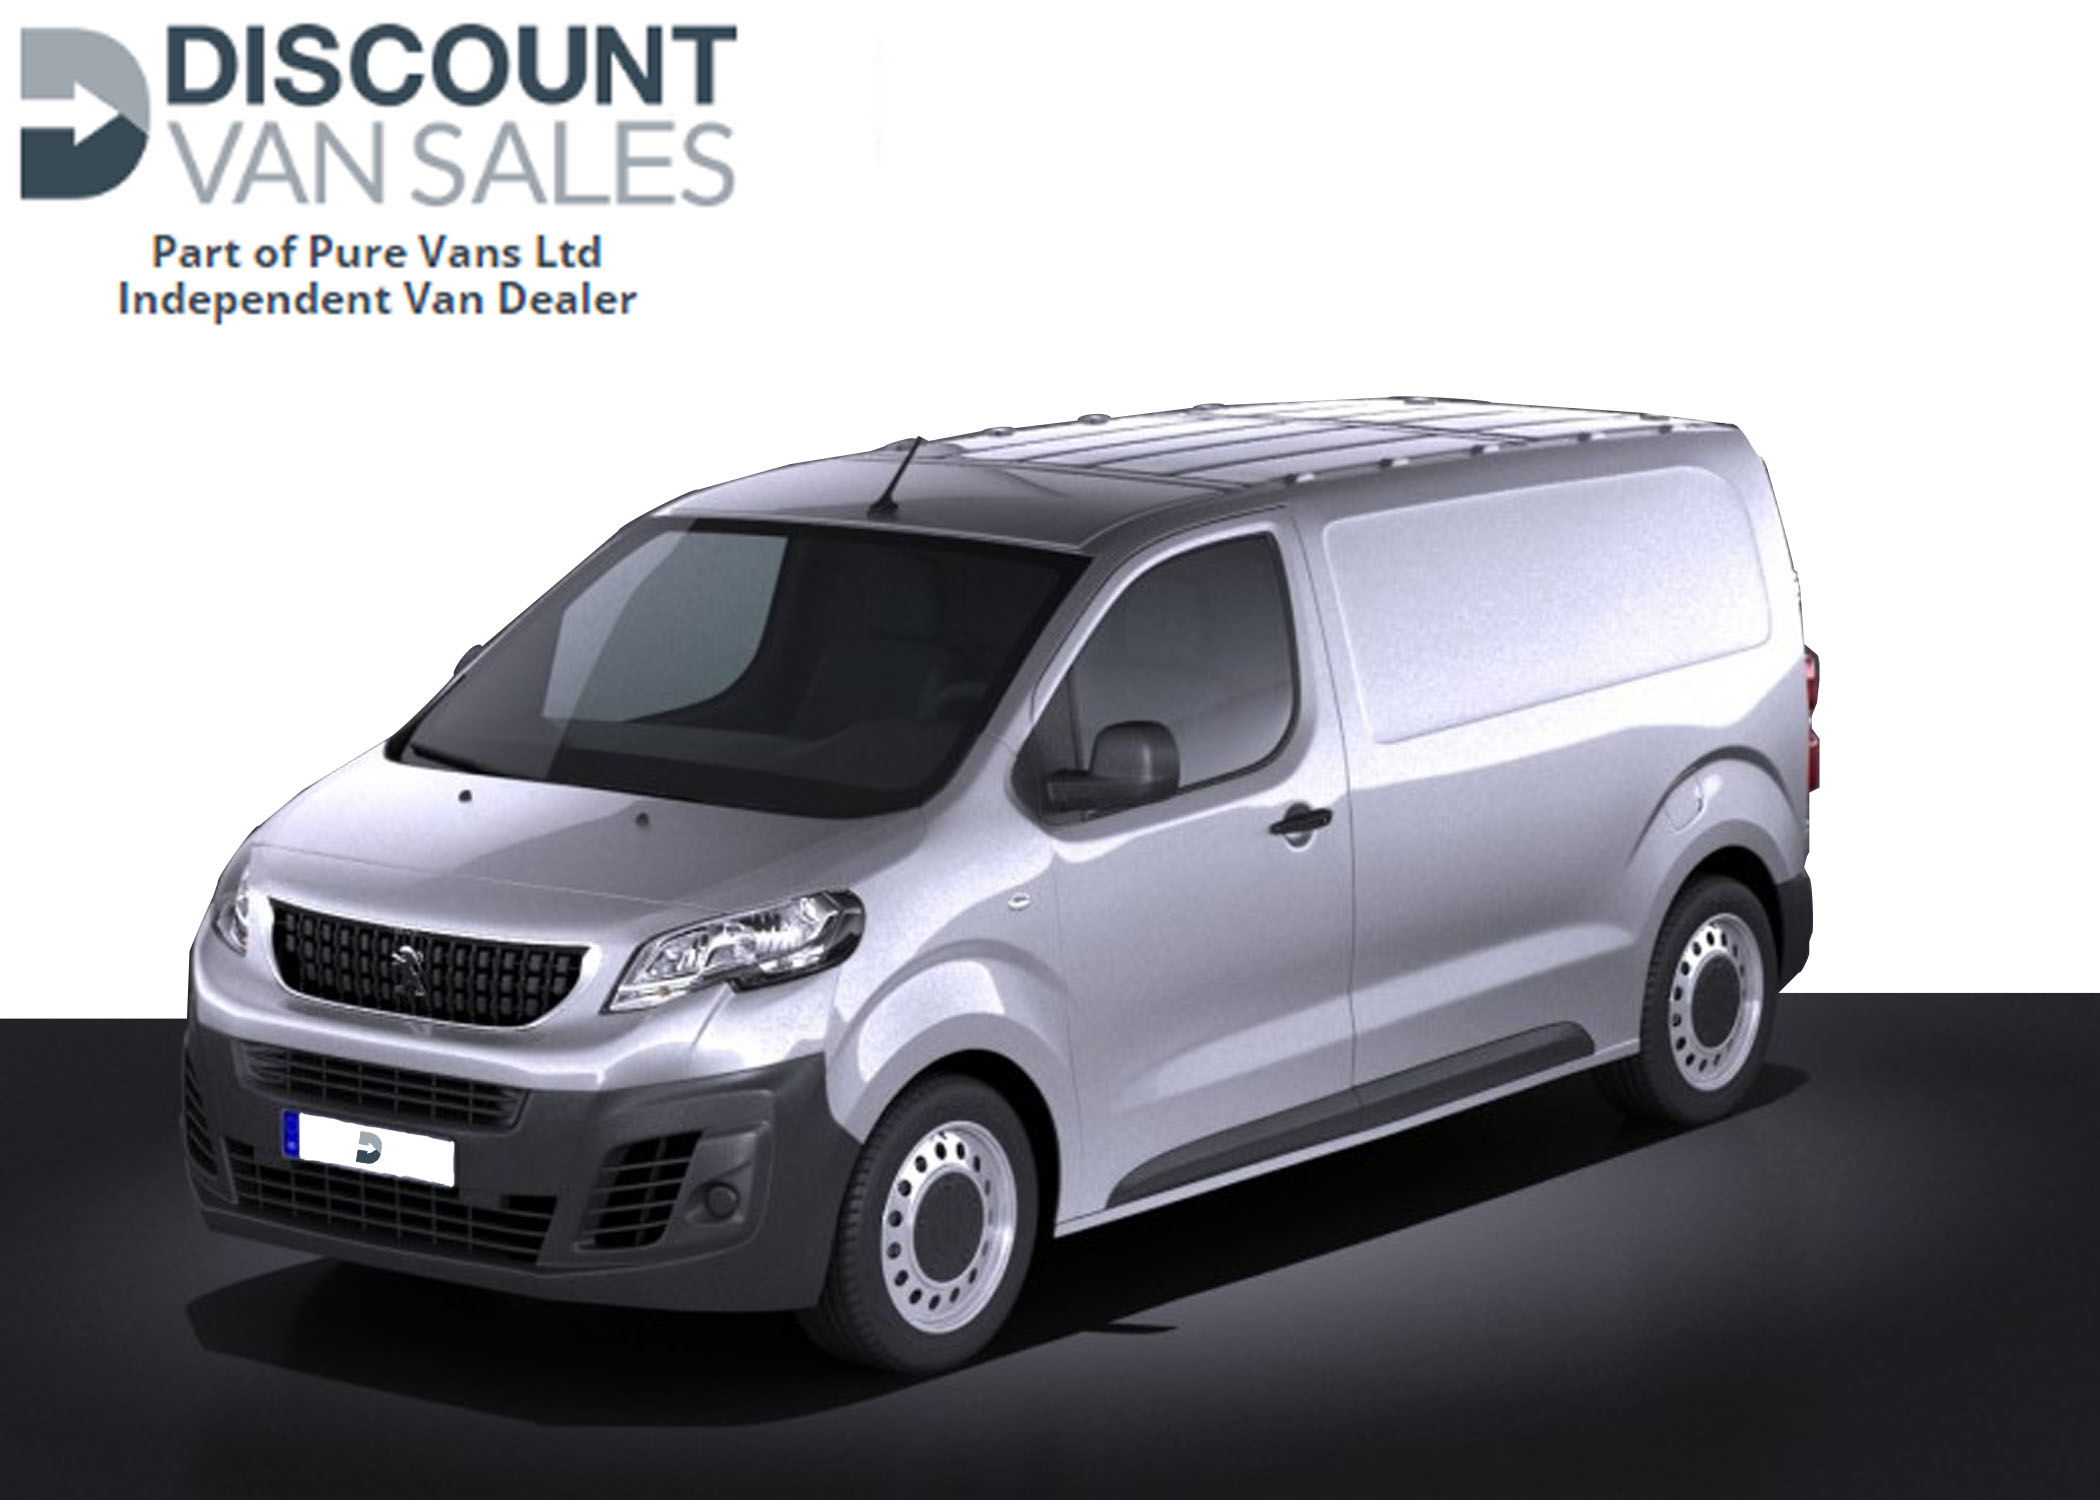 PEUGEOT EXPERT 1.6 BLUEHDI 115 S&S COMPACT PROFESSIONAL front.jpg